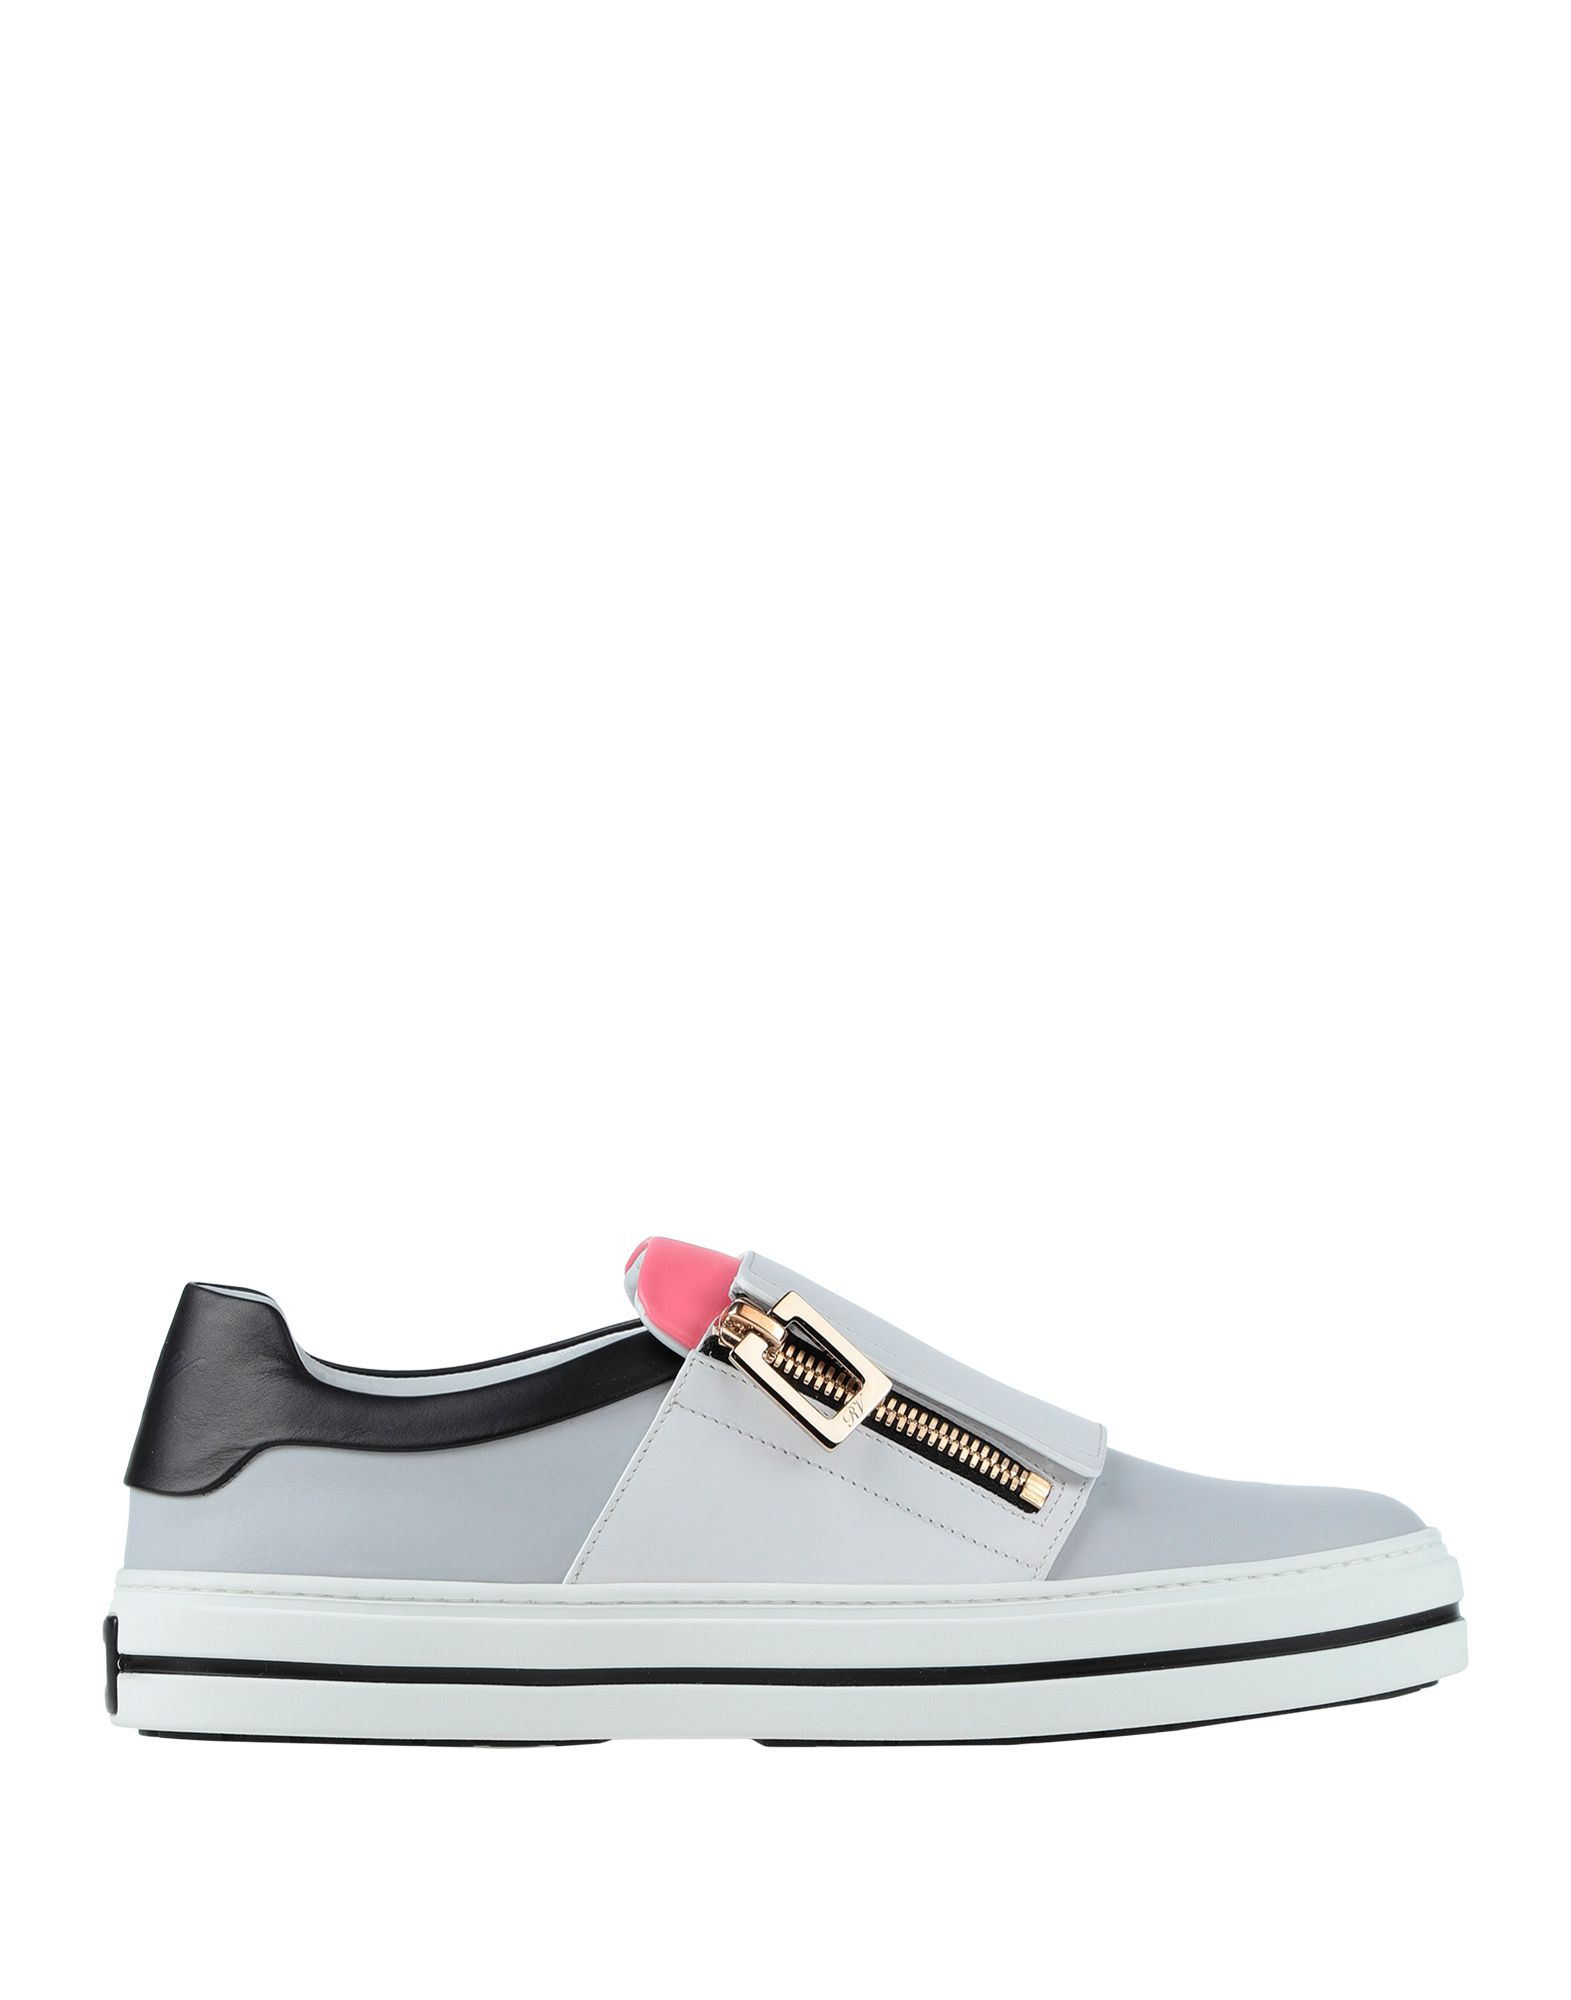 ROGER VIVIER Sneakers. leather, metal applications, solid color, elasticized gores, round toeline, flat, leather lining, rubber sole, contains non-textile parts of animal origin. Soft Leather